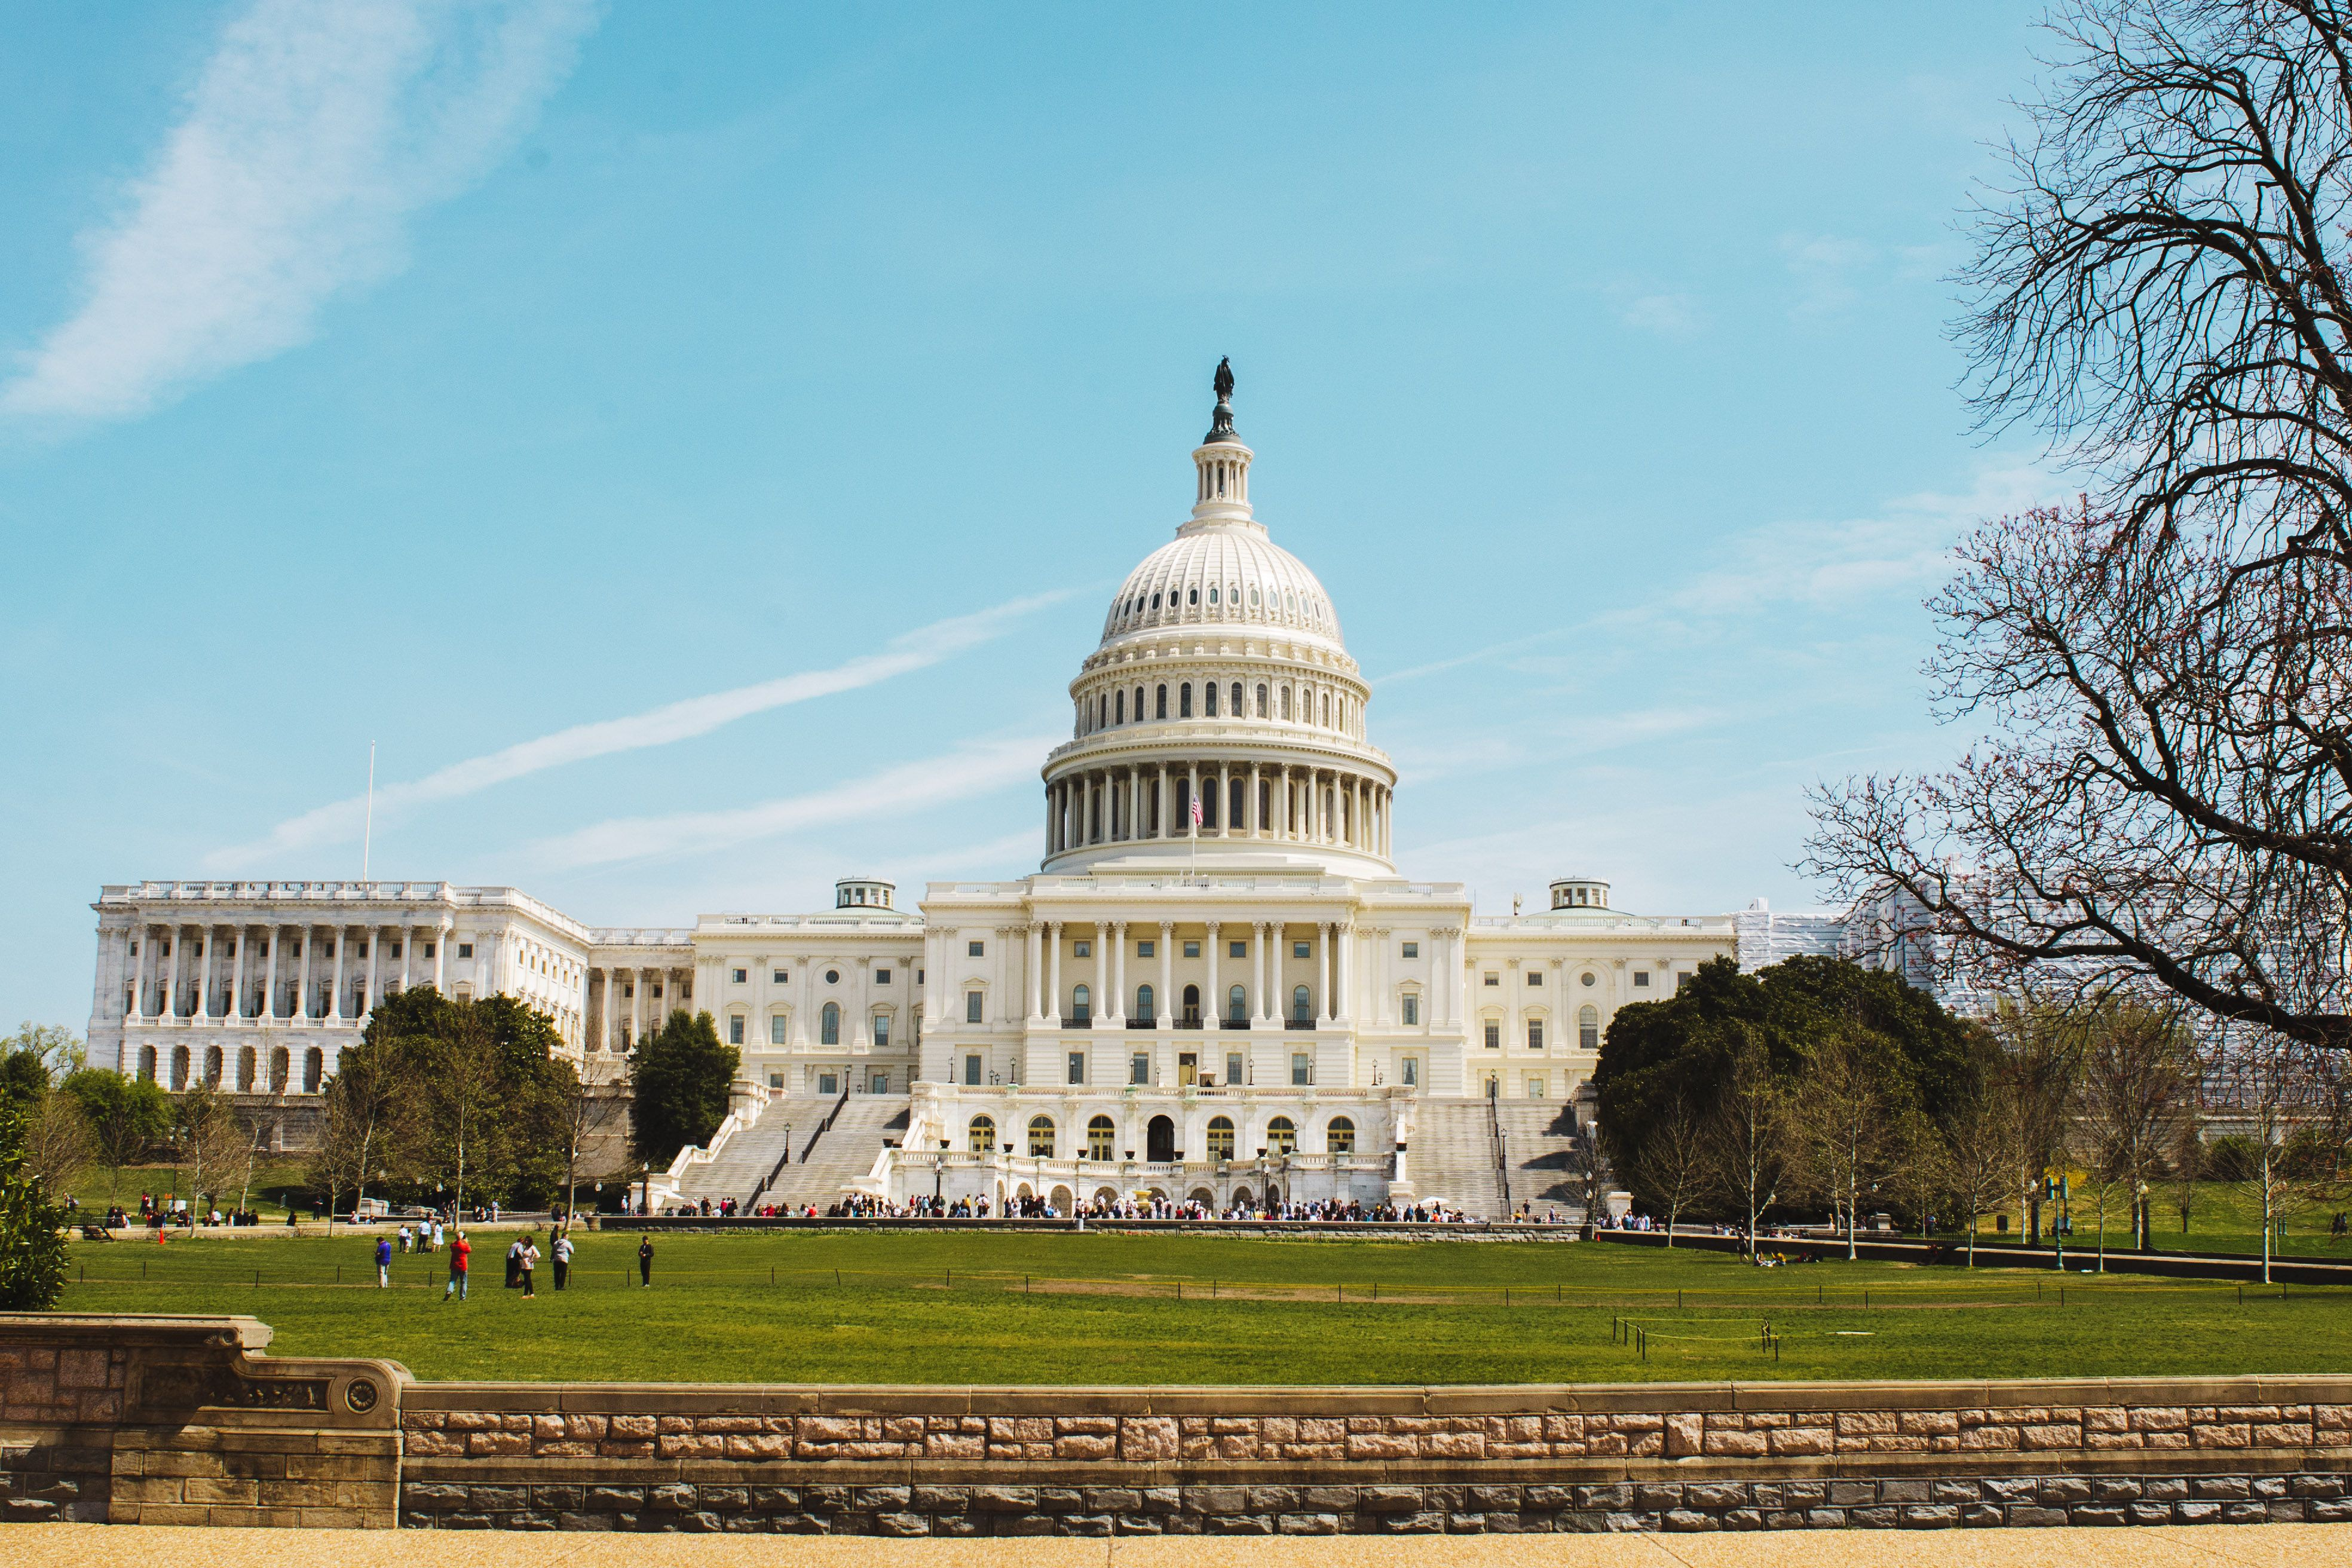 One Day Tour Itinerary in Washington, DC